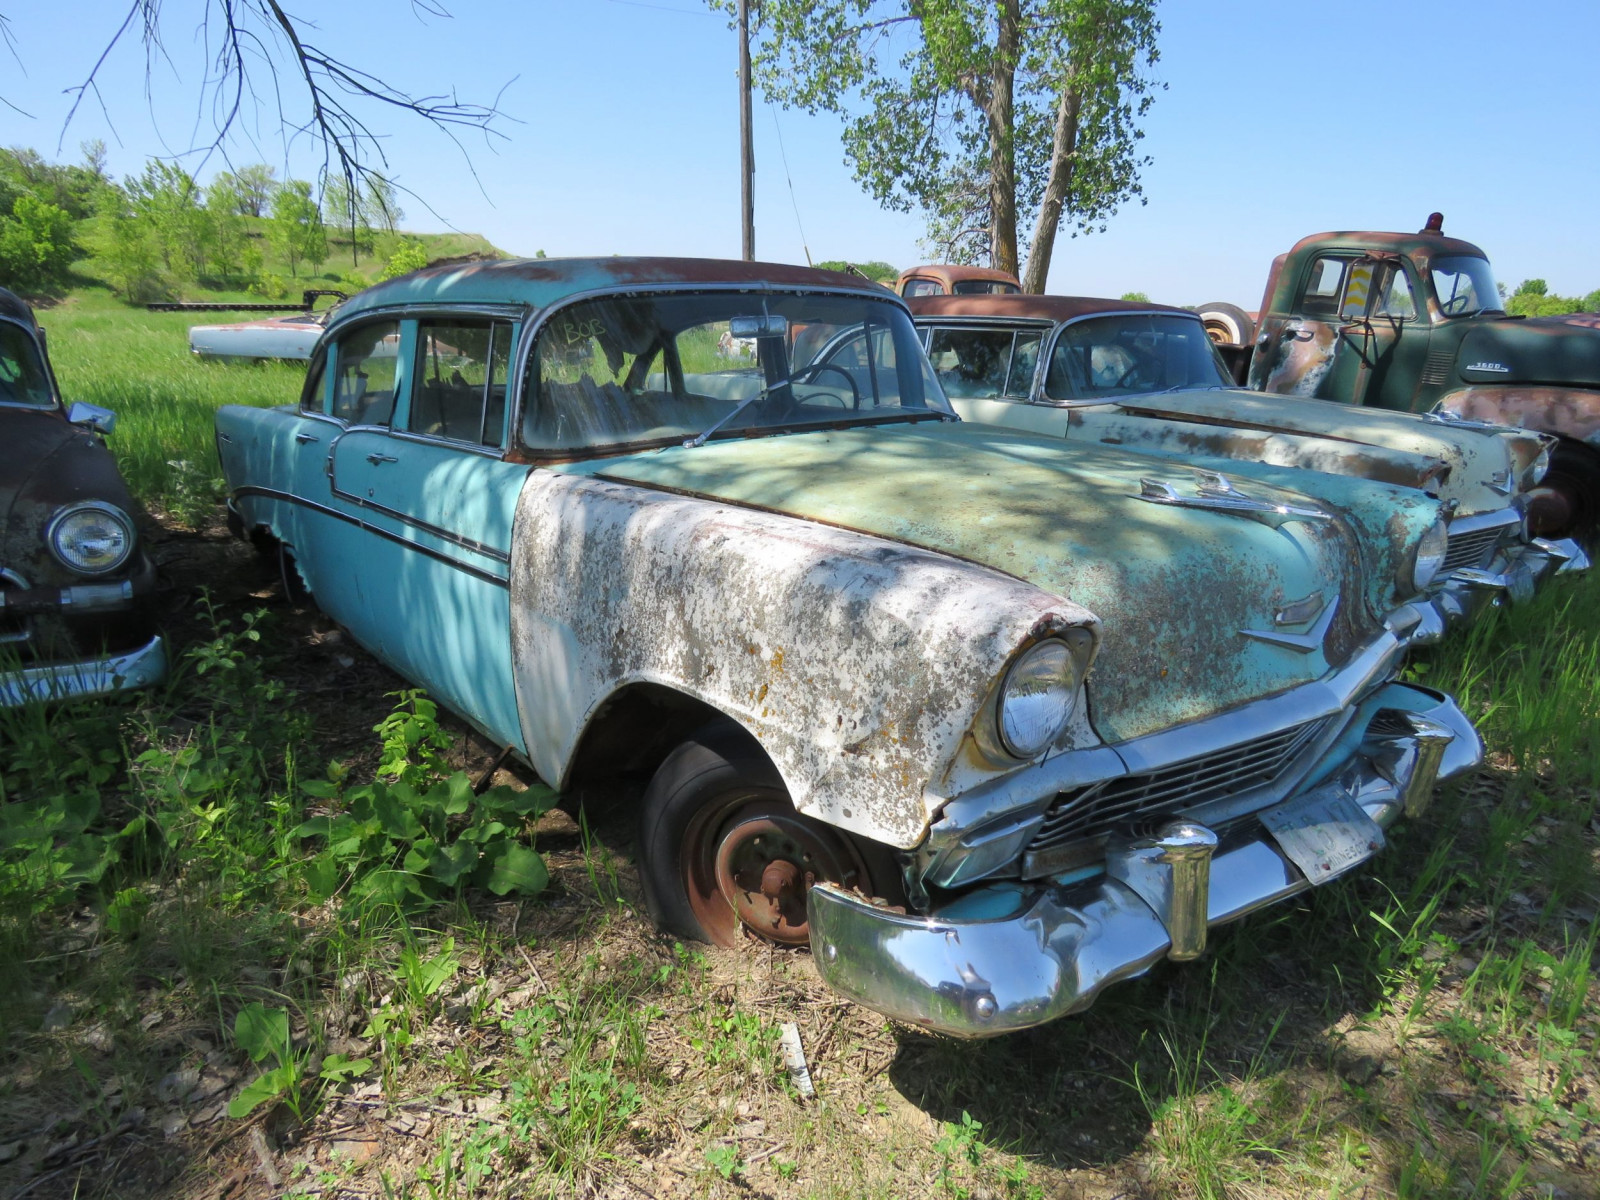 1956 Chevrolet Belair 4dr Sedan for Project or parts VC56J080987 - Image 3